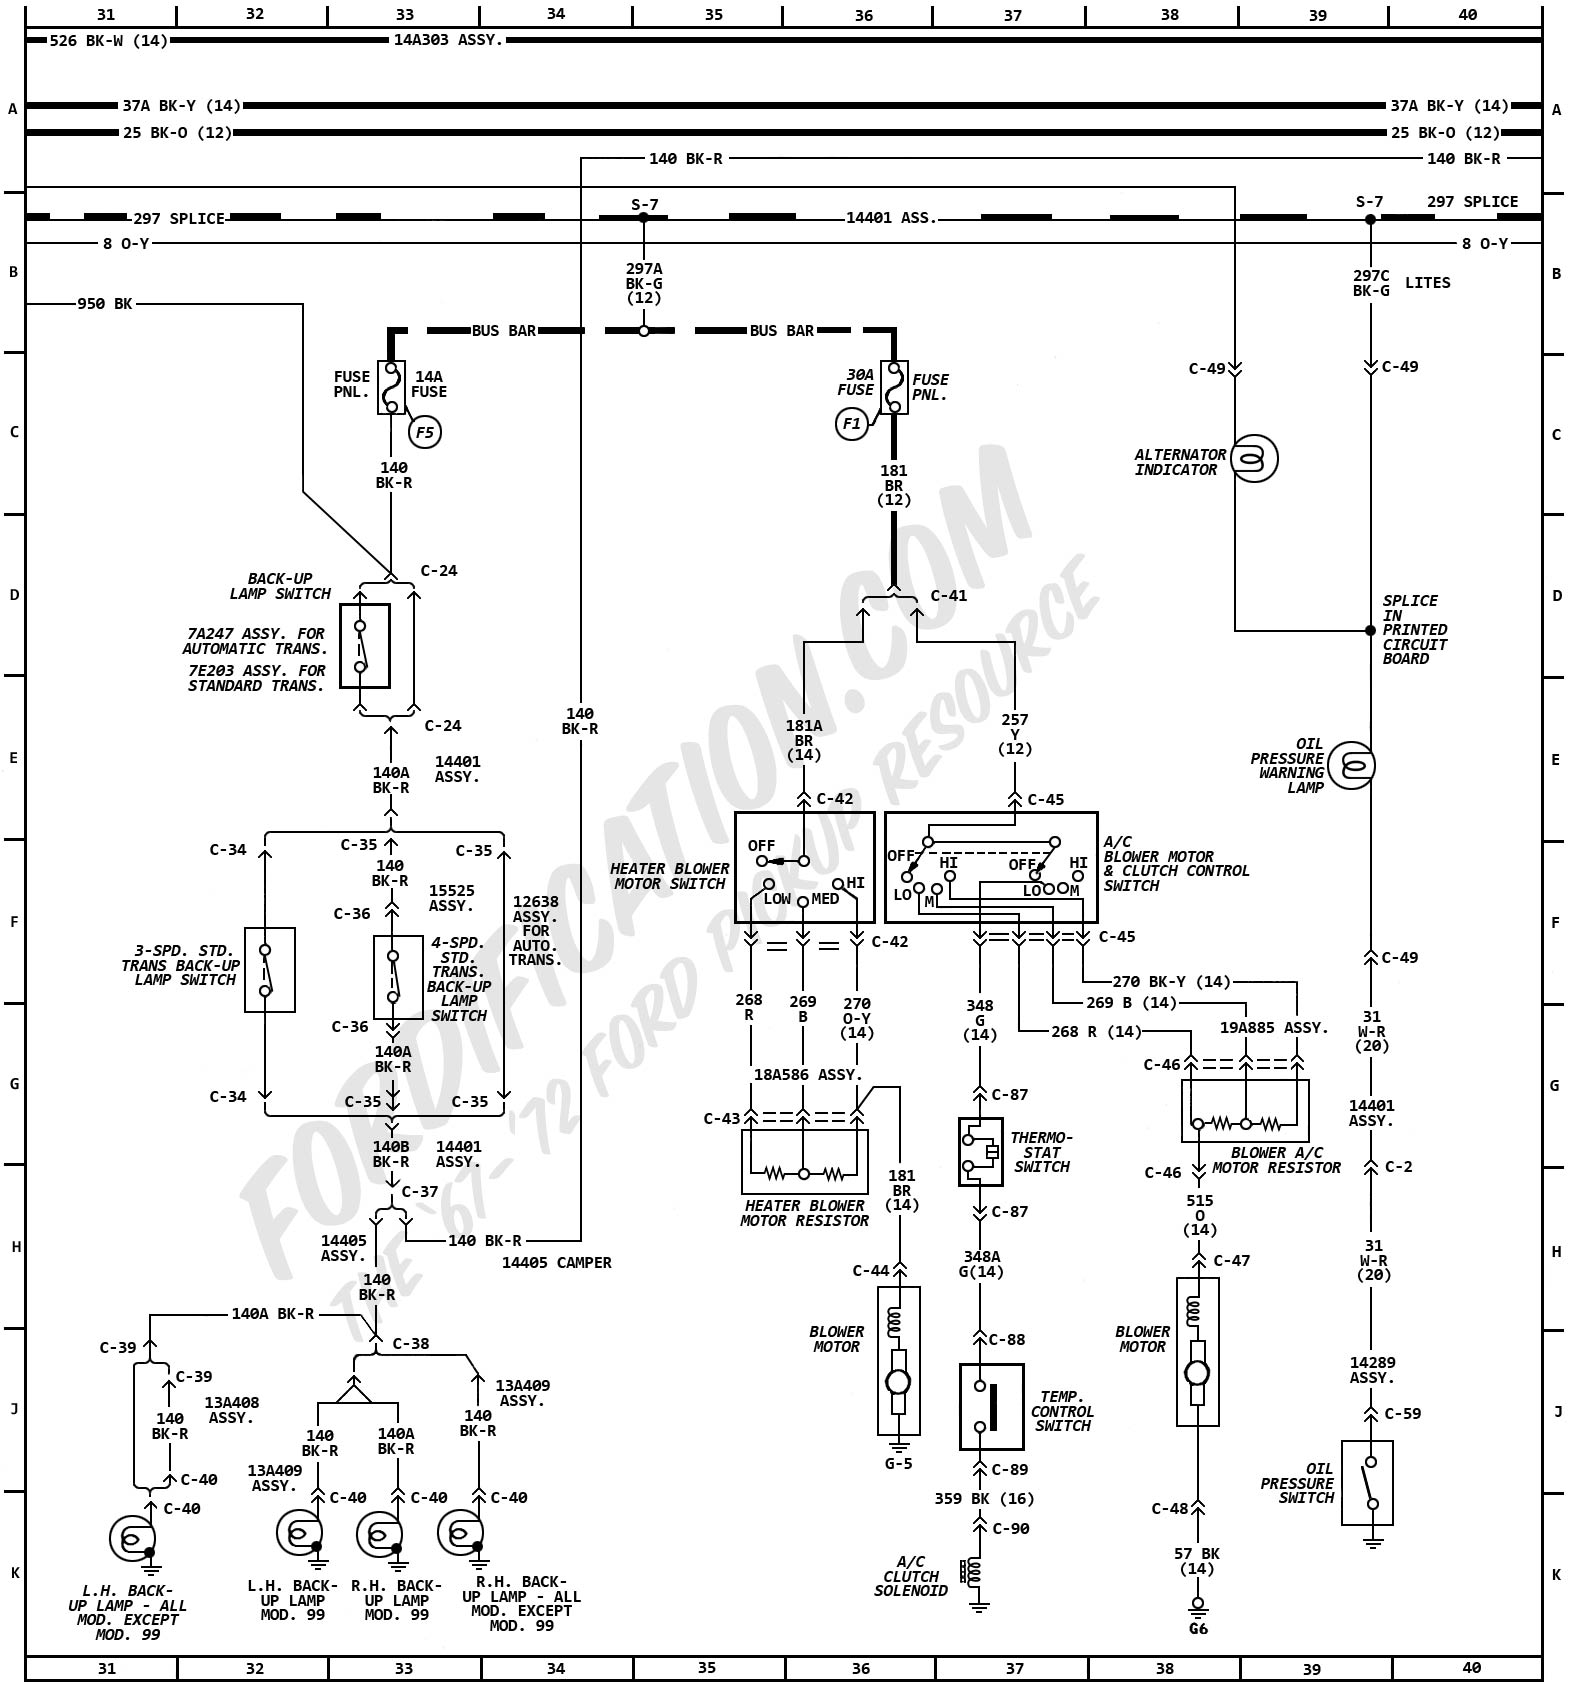 1972 Ford Truck Wiring Diagrams Light Blower Motor H 38 4